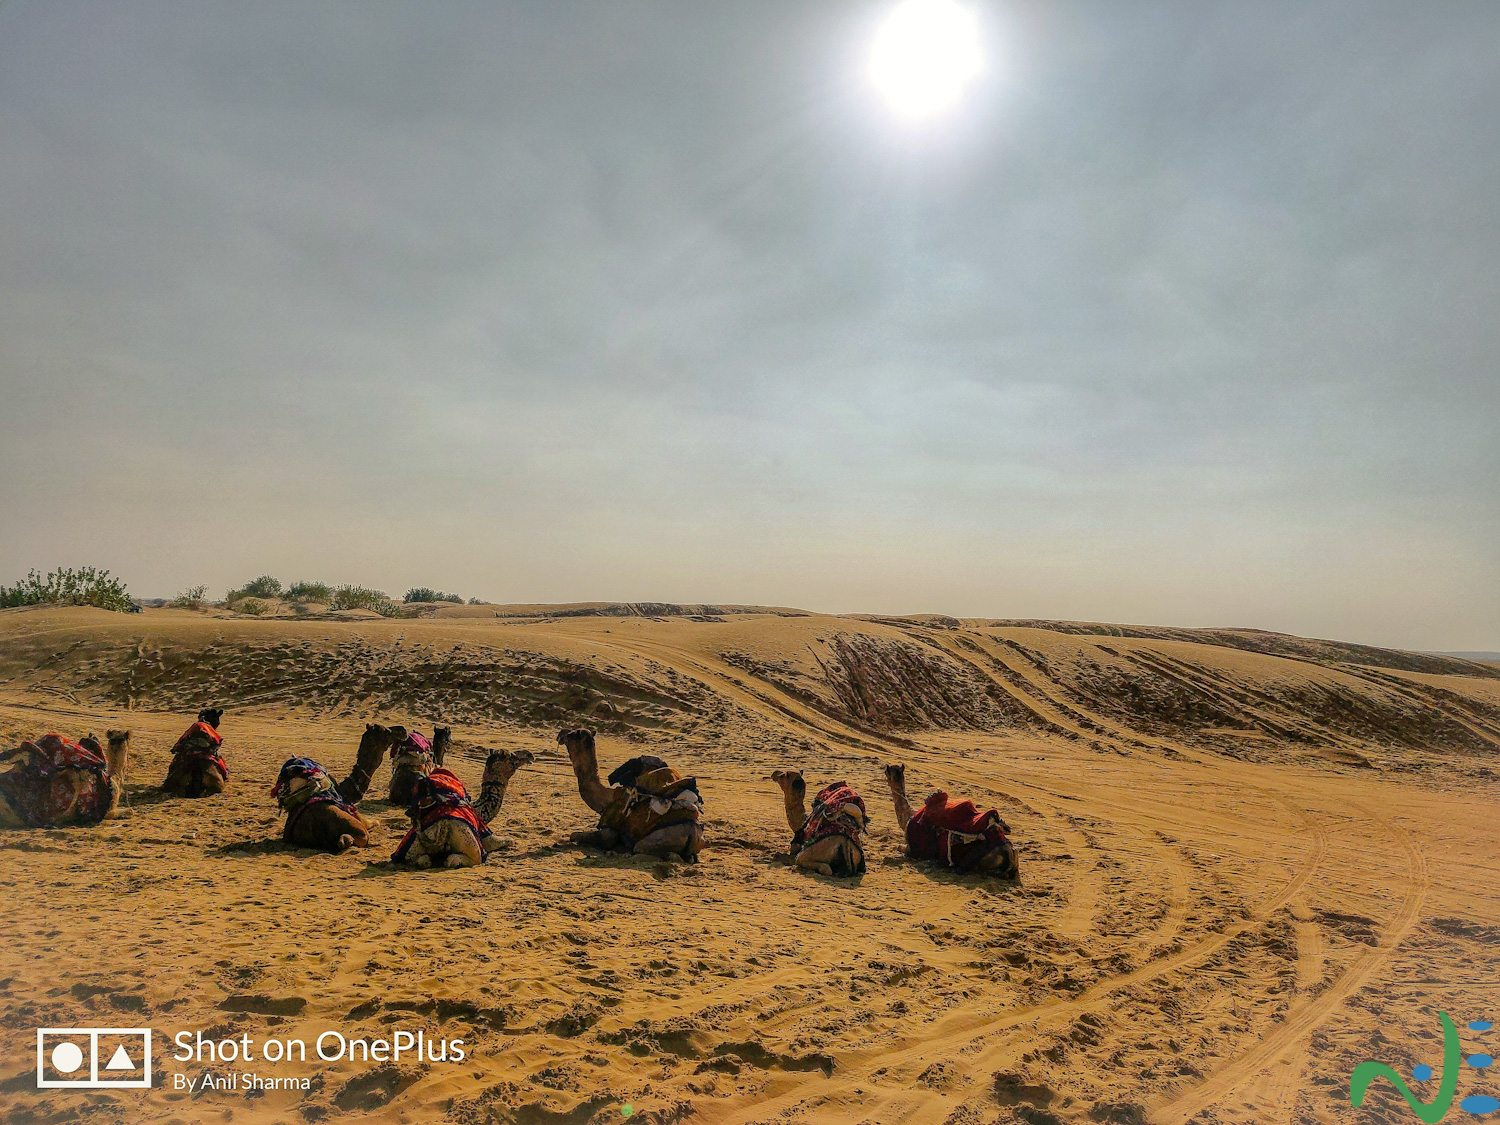 desert safari is a must-to-do activity in Sand dunes in Jaisalmer Rajasthan